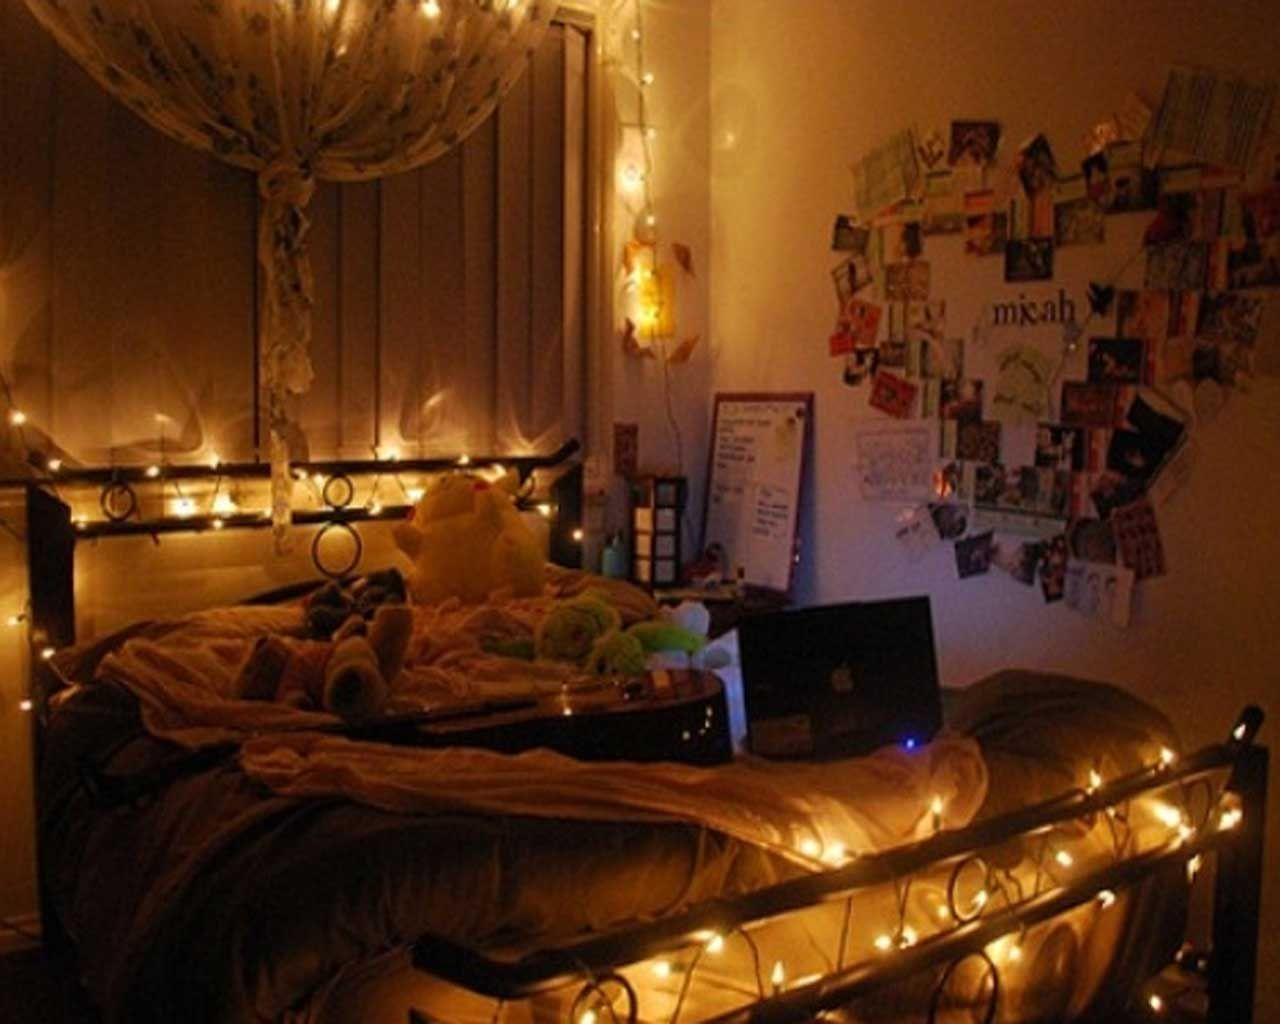 This Looks So Romantic And I Have A Similar Bed Fairy Lights Bedroom Romantic Bedroom Lighting Christmas Lights In Bedroom